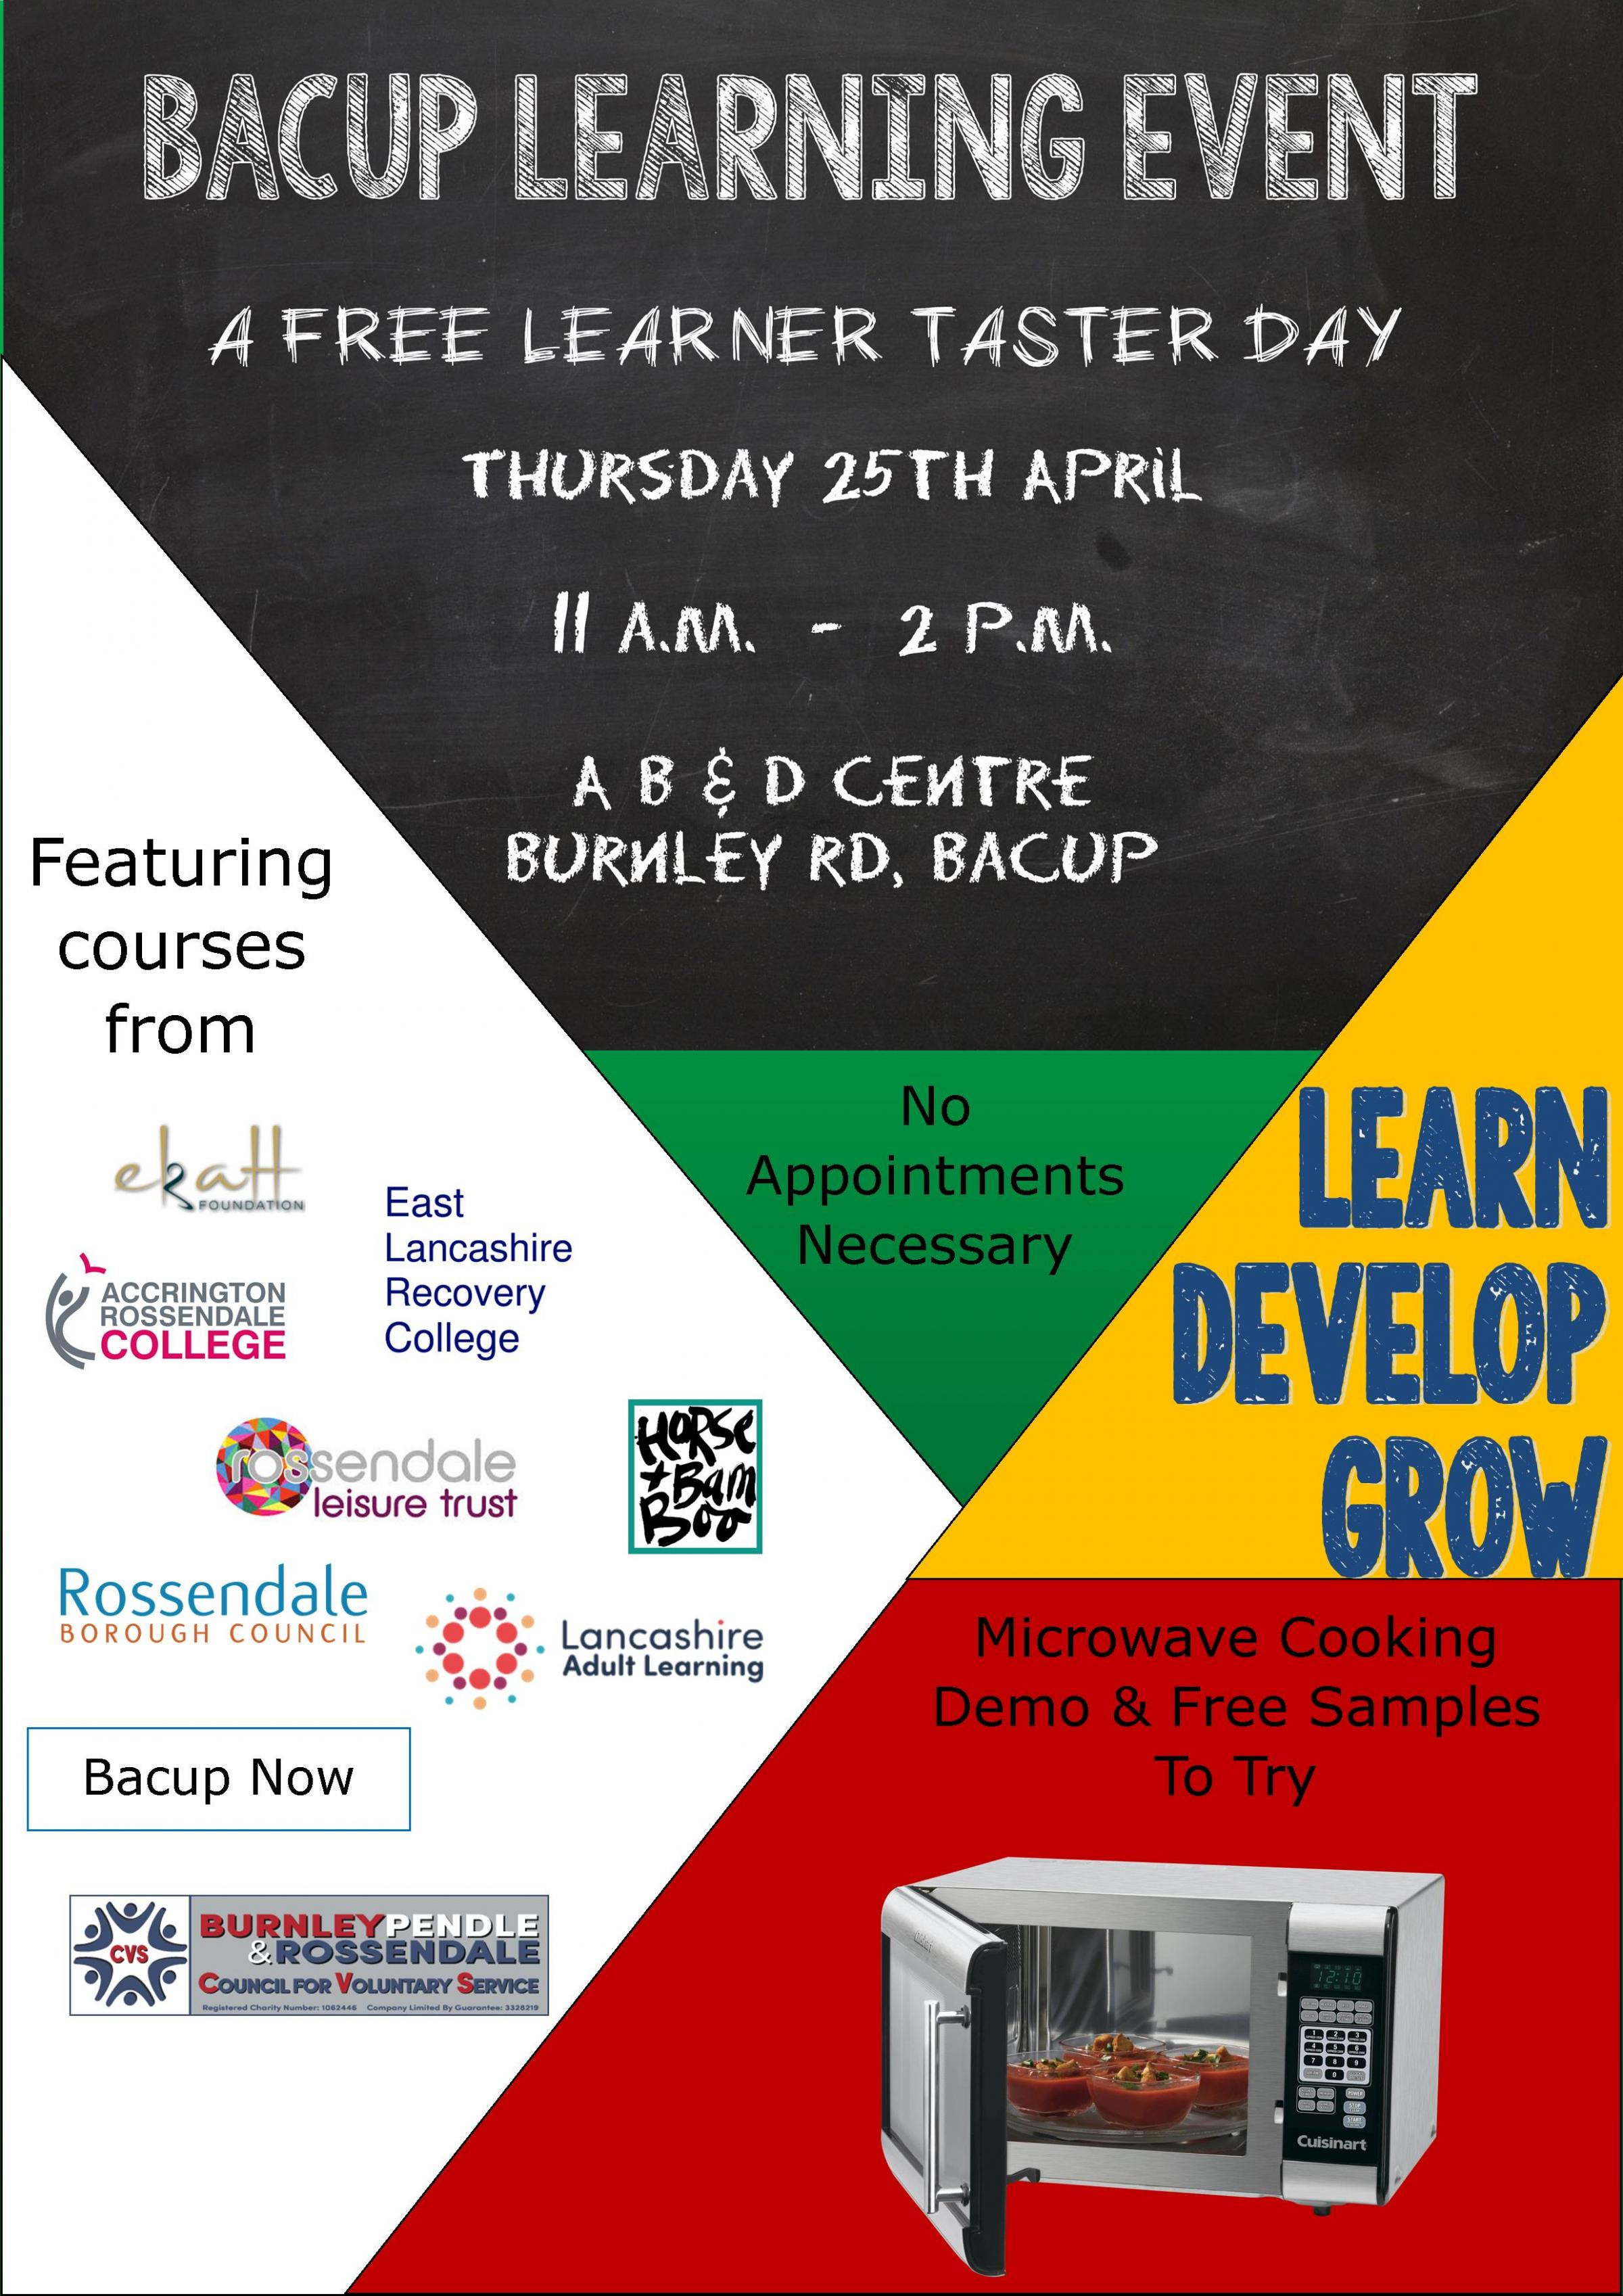 Bacup Learning Event